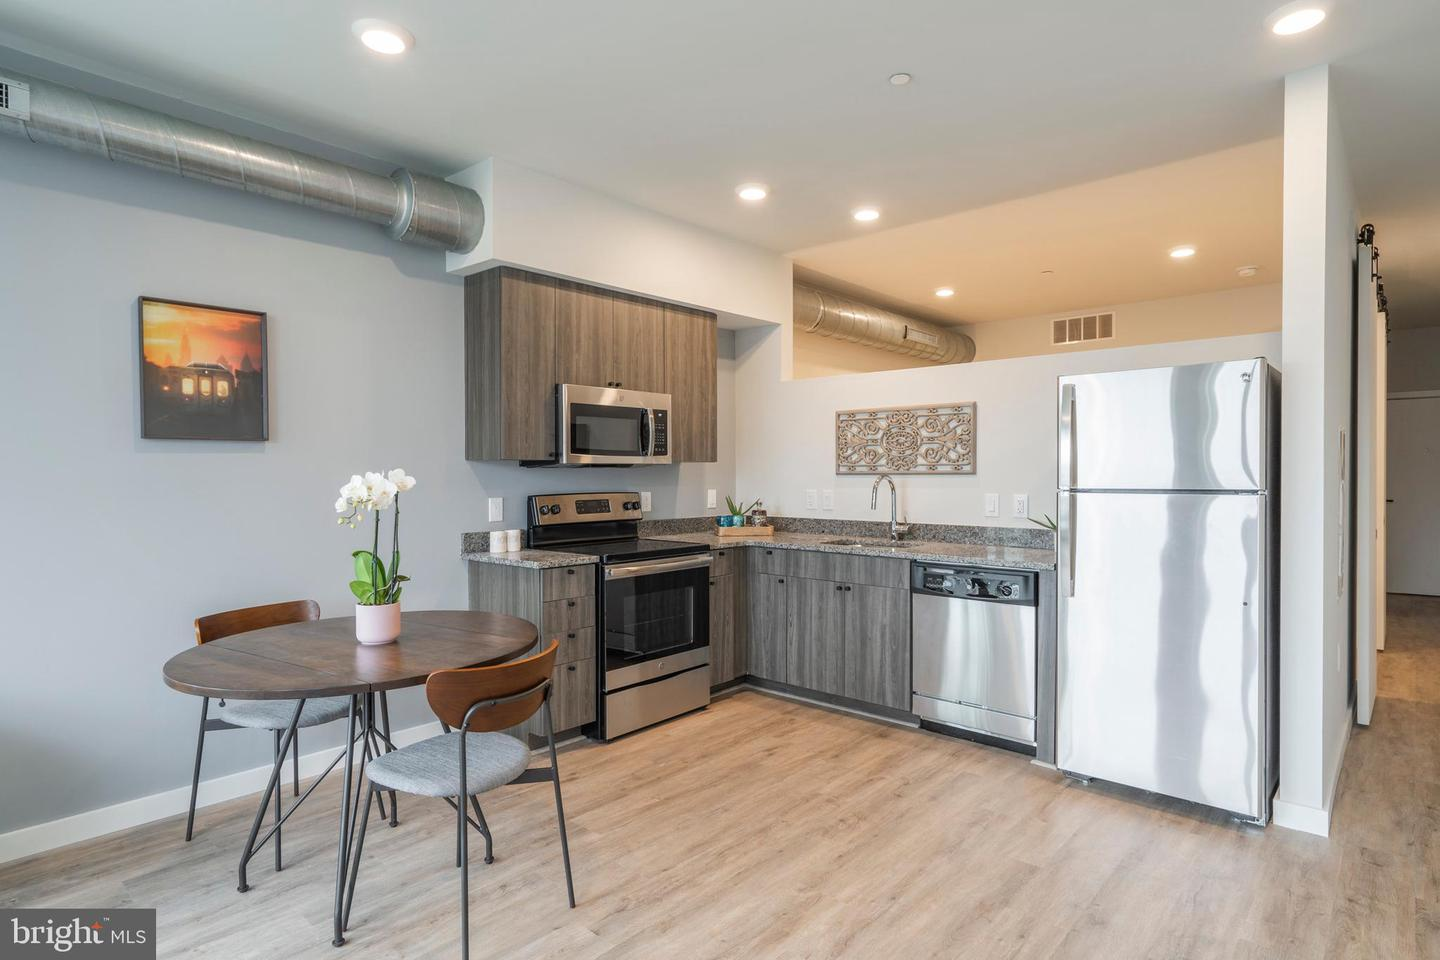 2120 E York Street UNIT 408 Philadelphia, PA 19125